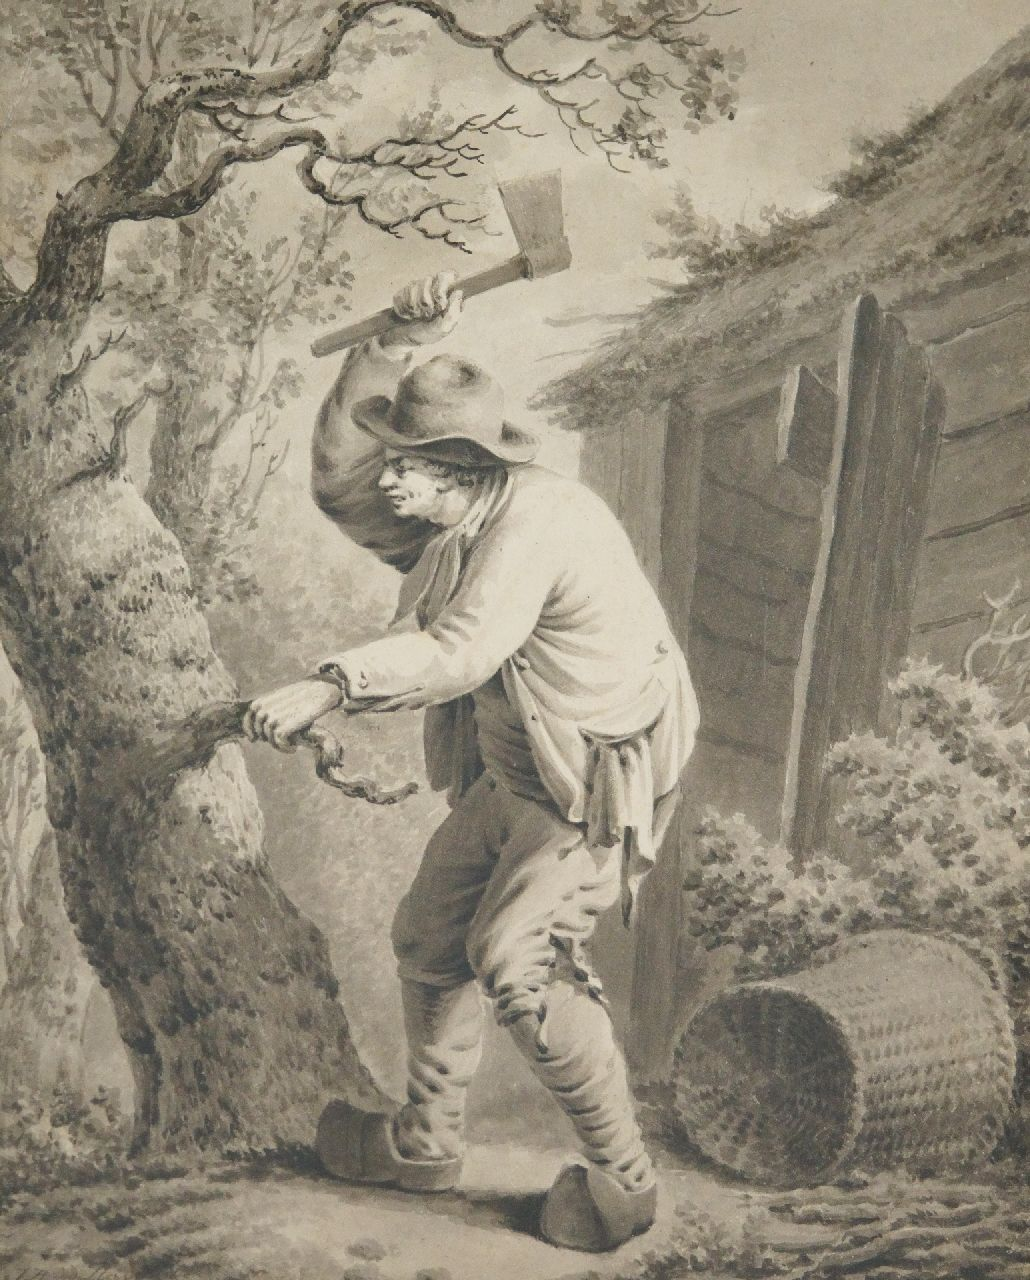 Jacques van der Heyden | Lumberjack, drawing on paper, 29.0 x 23.0 cm